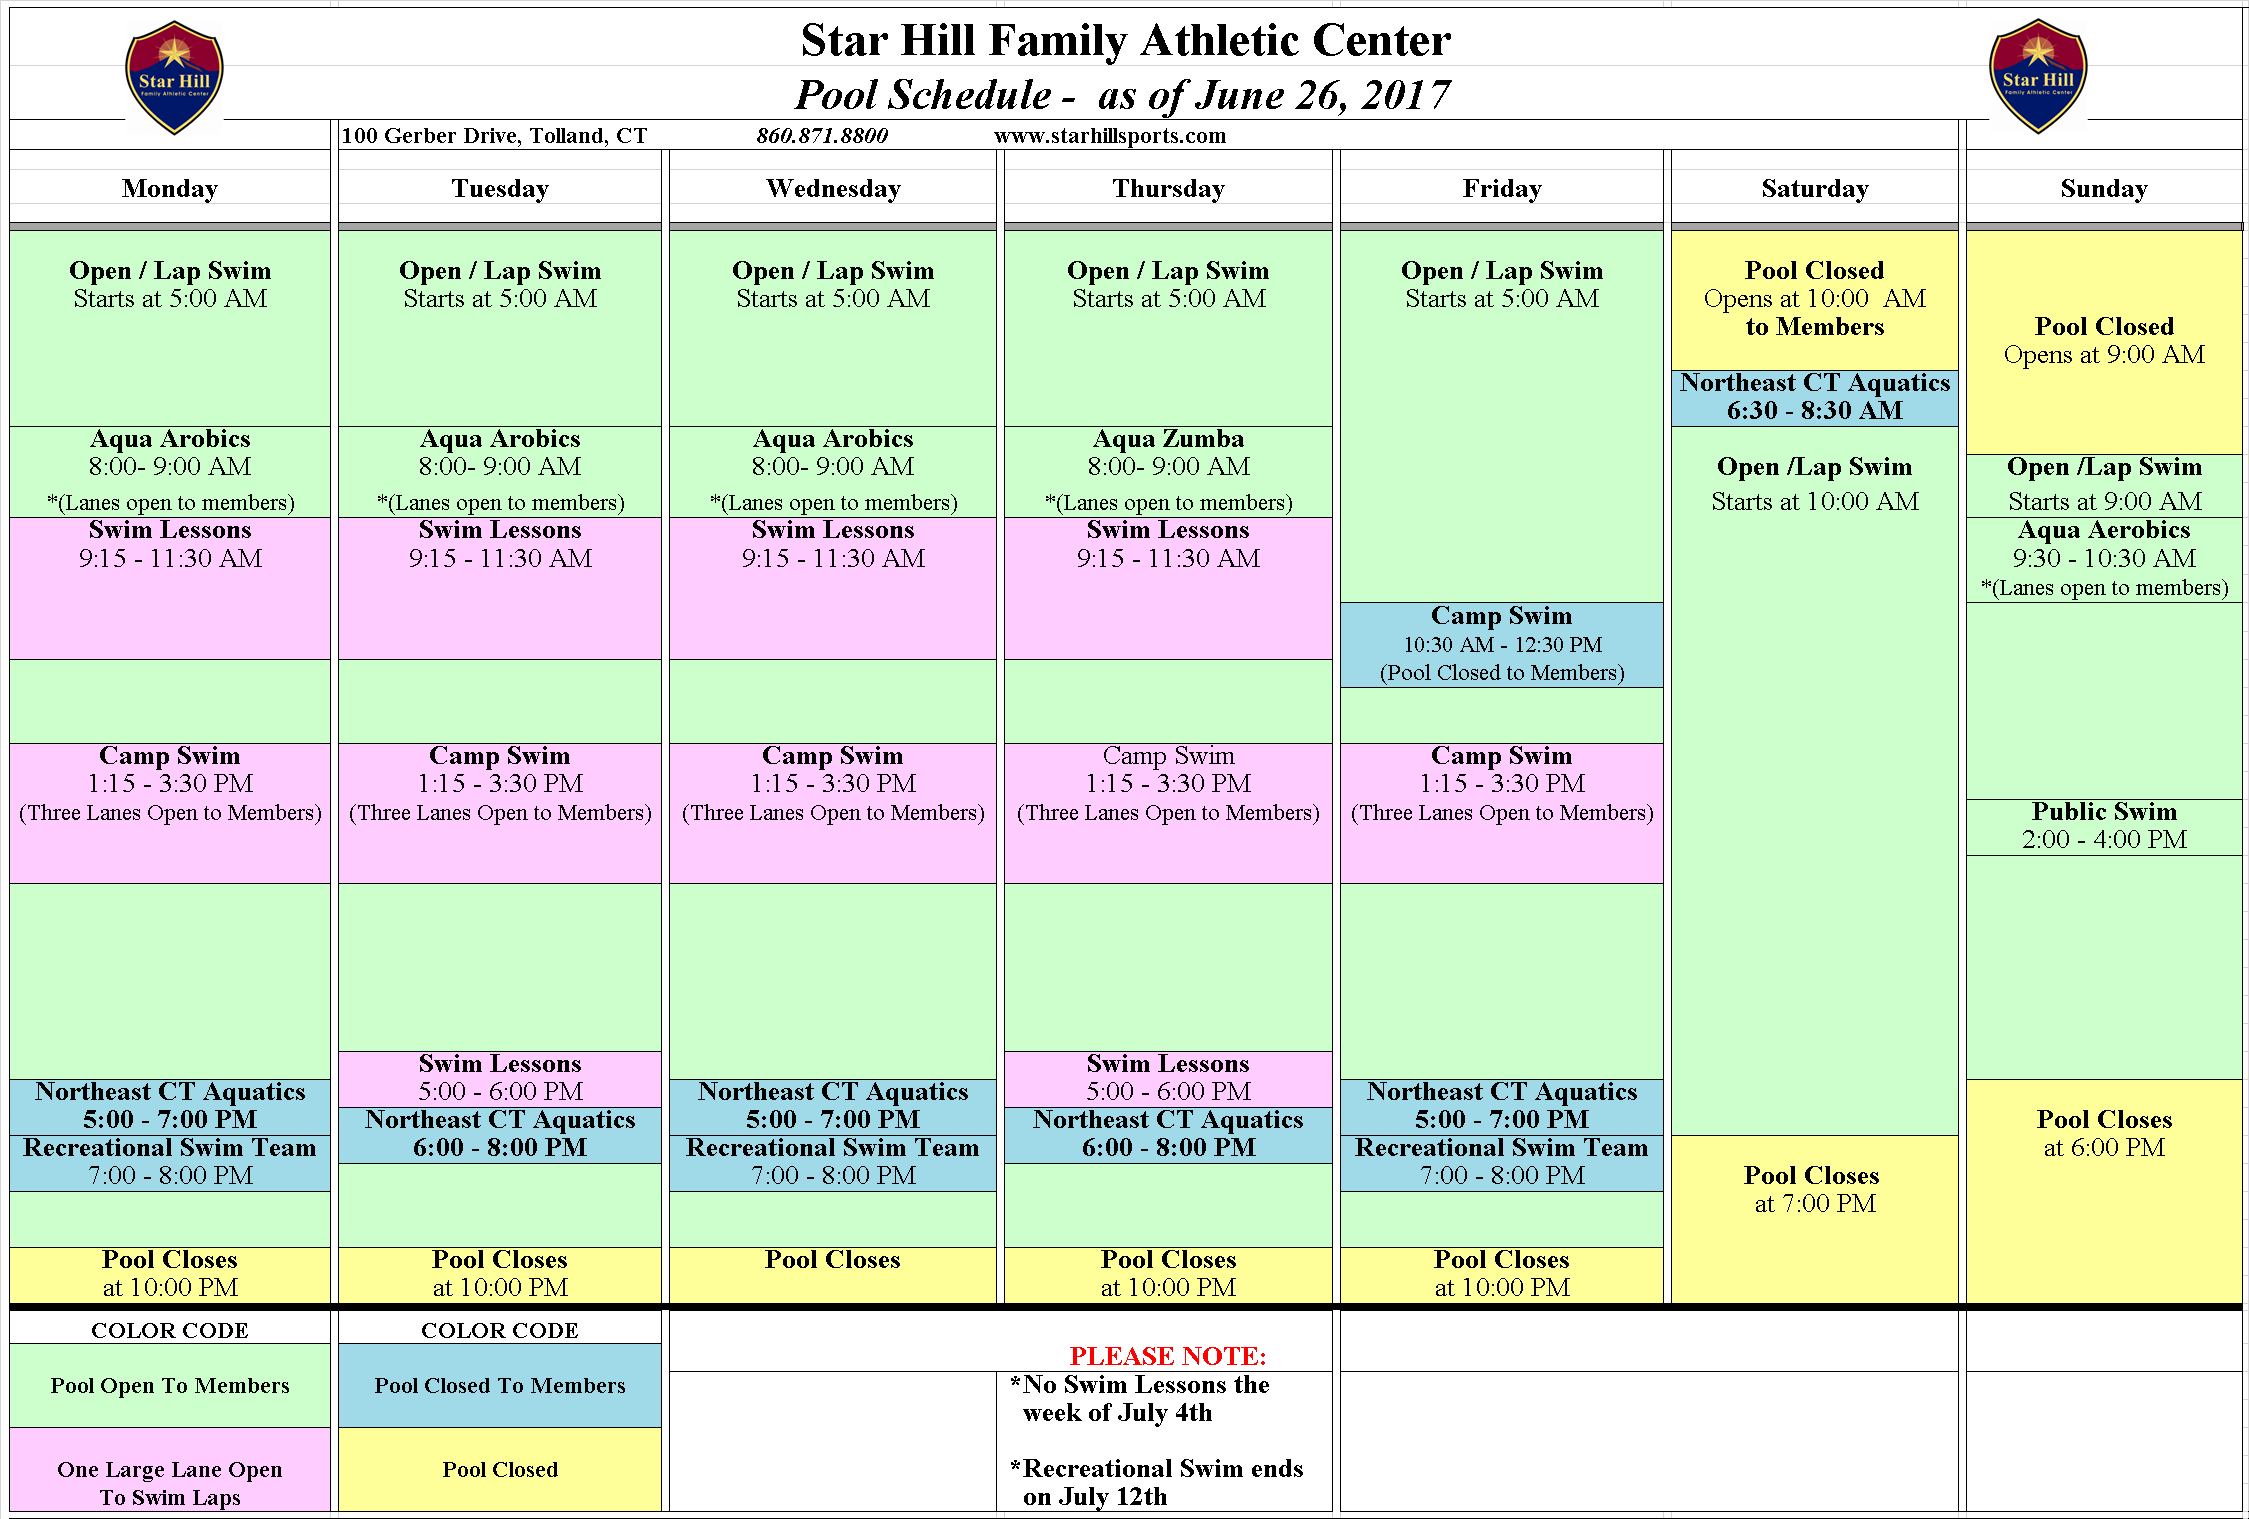 poolsched6-26-17